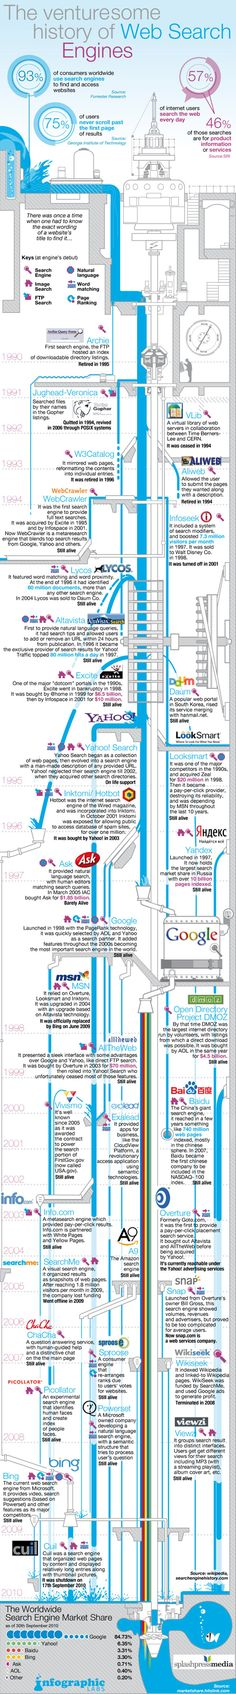 SEARCH ENGINE HISTORY [INFOGRAPHIC] #SEO #SEM